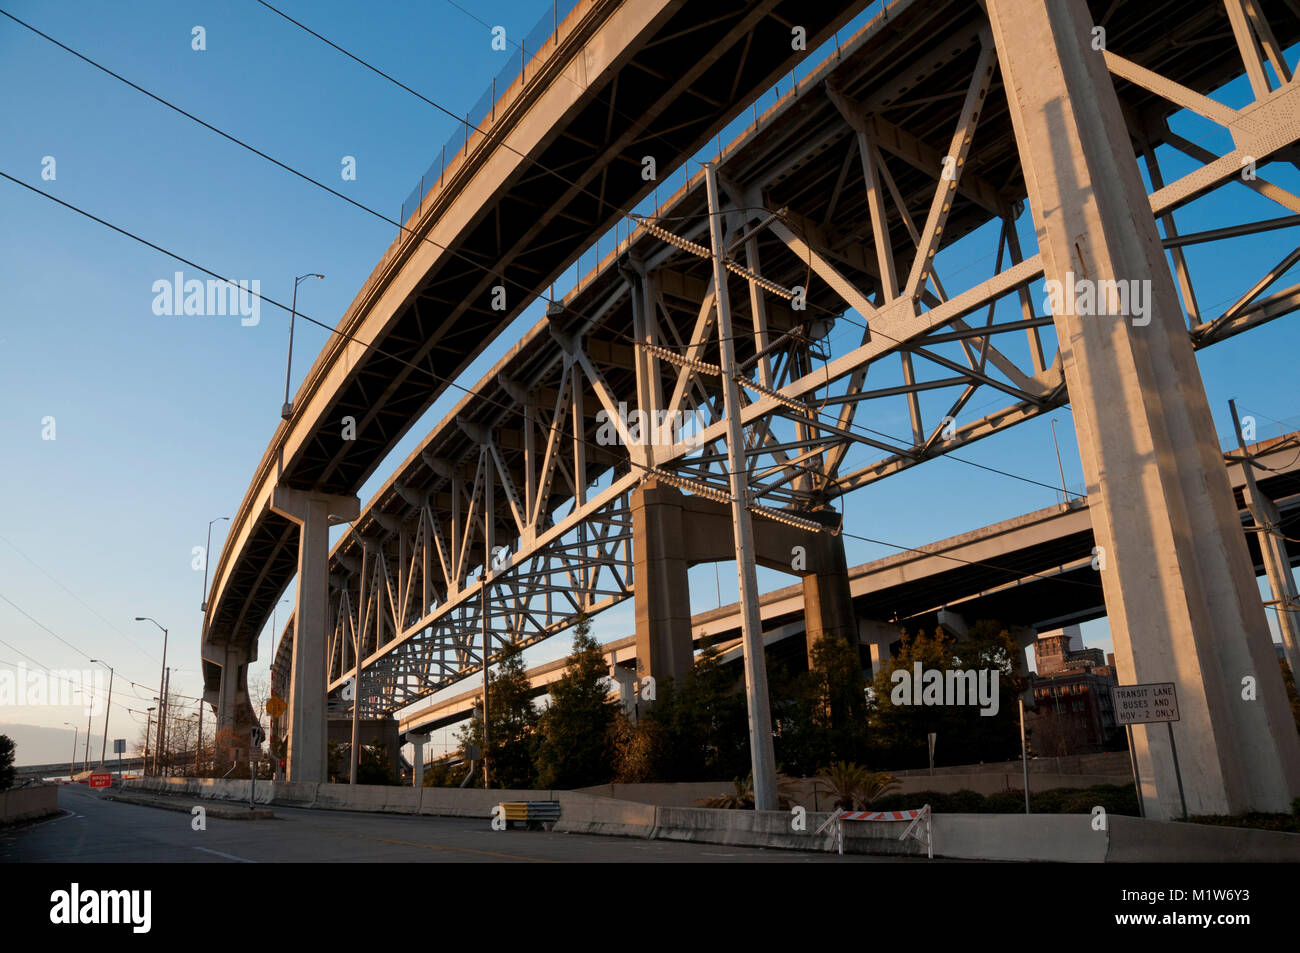 Urban bridge trusses - Stock Image